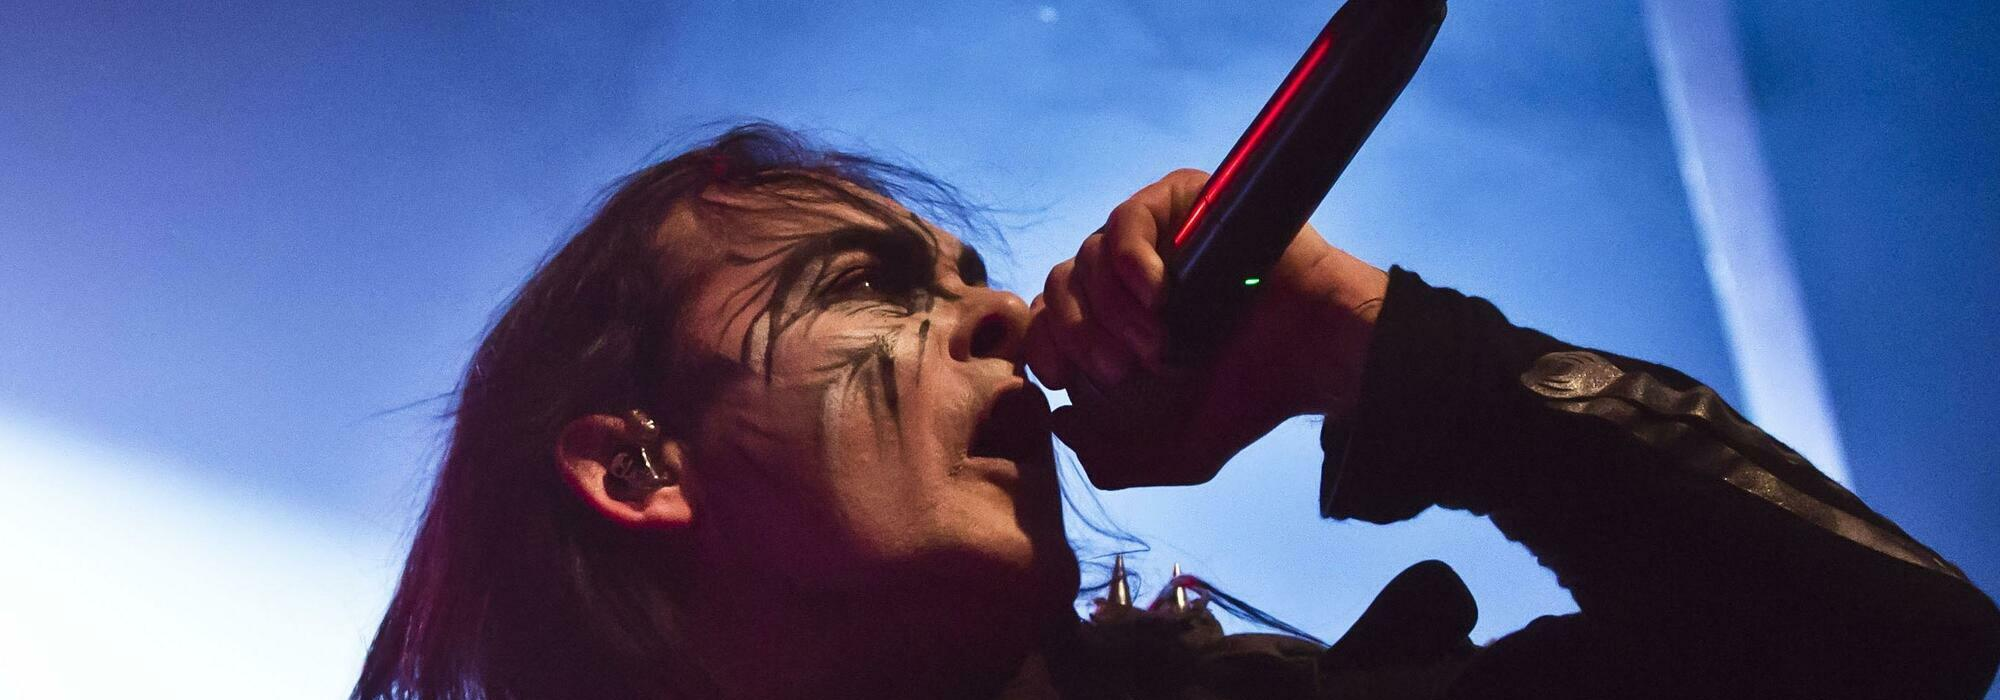 A Cradle of Filth live event